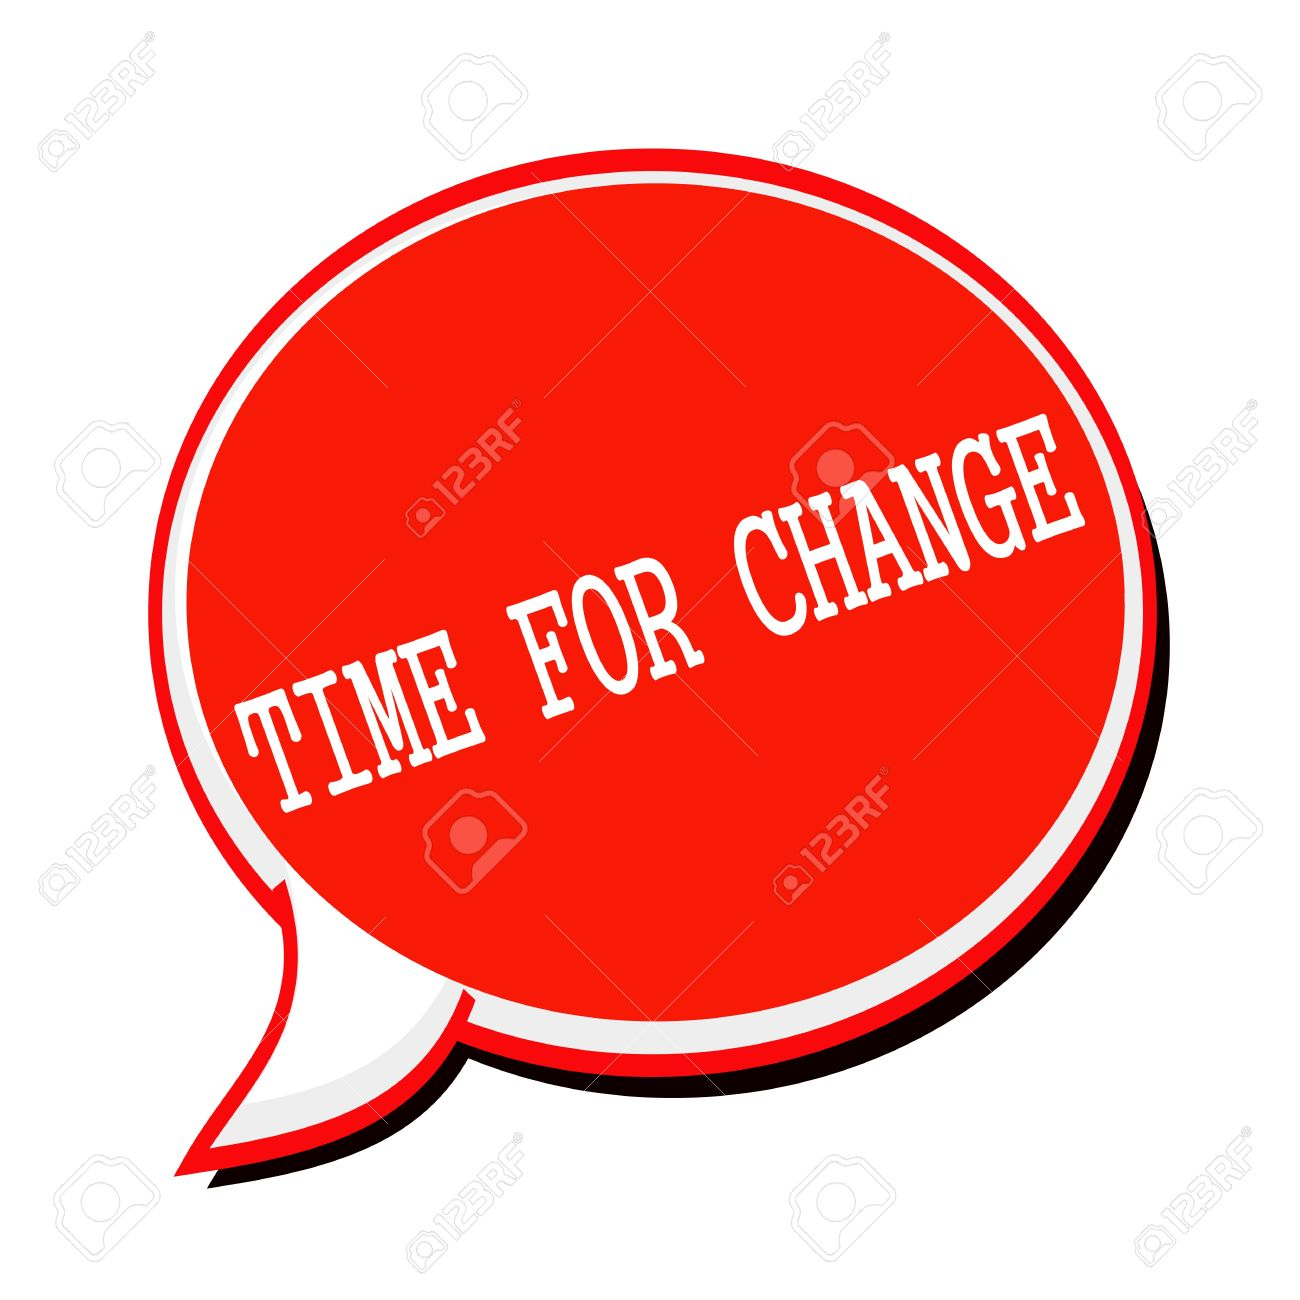 TIME FOR CHANGE White Stamp Text On Red Speech Bubble Stock Photo.